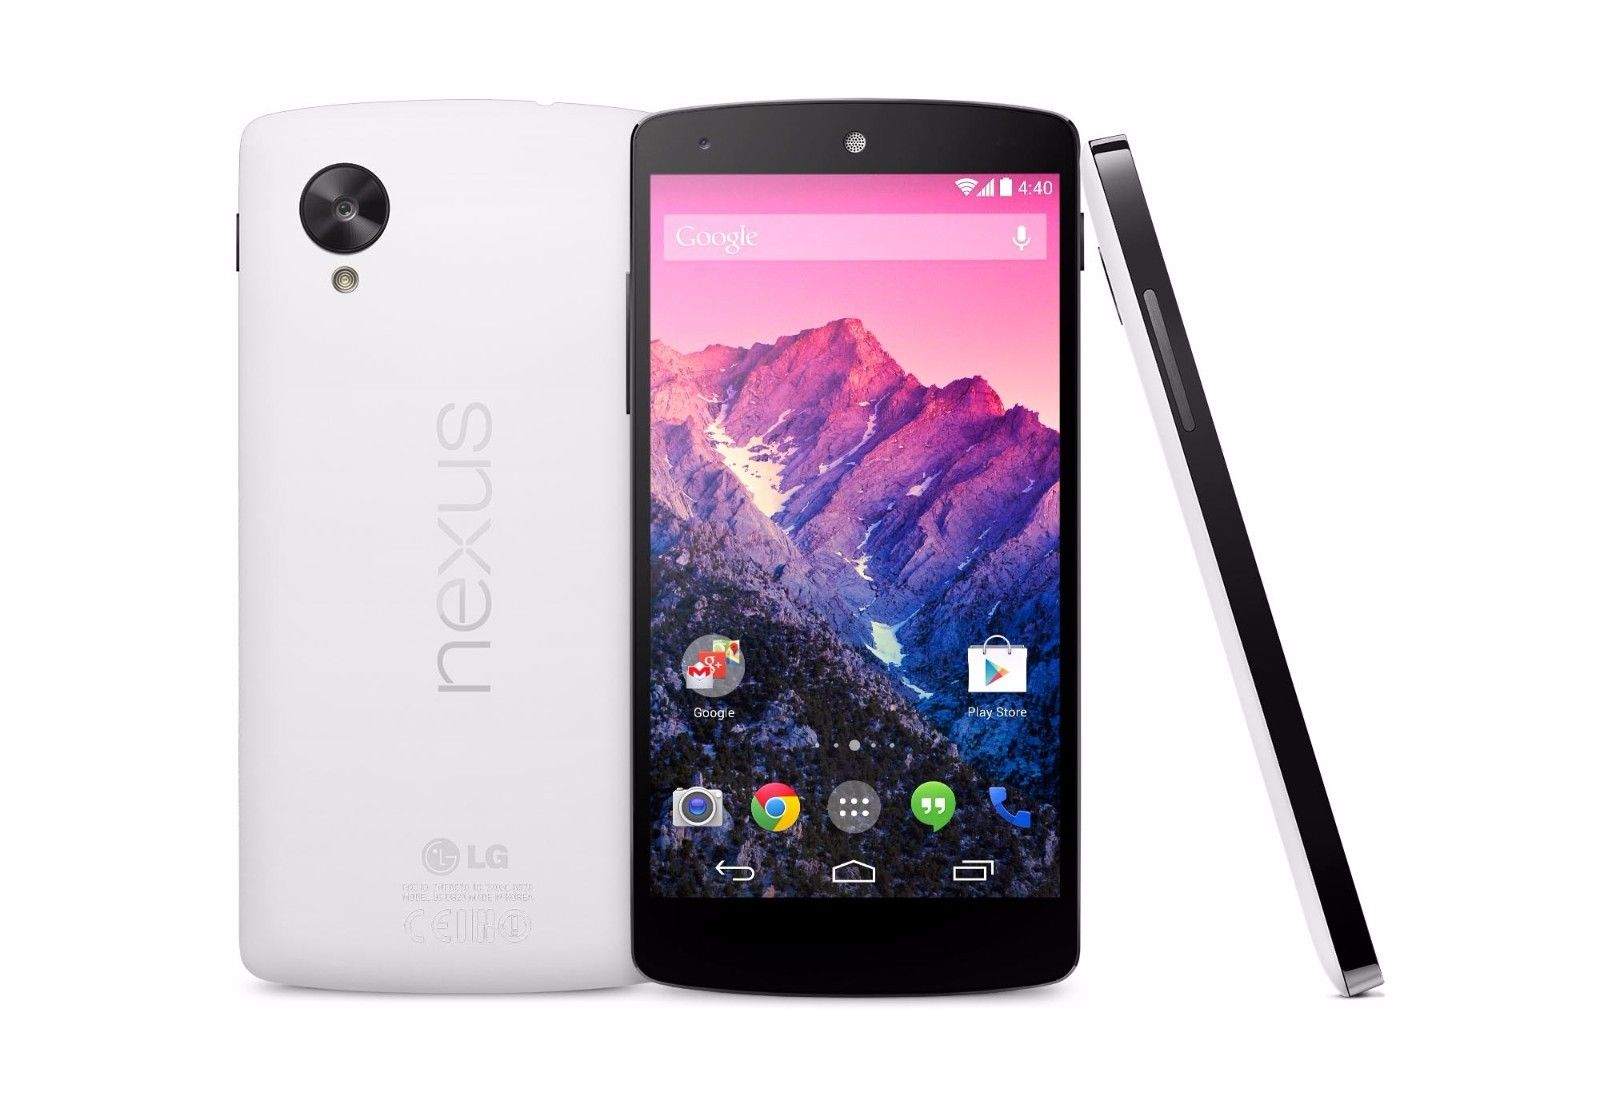 Details about LG NEXUS 5 D821 Europe Model 2gb 32gb 4 95